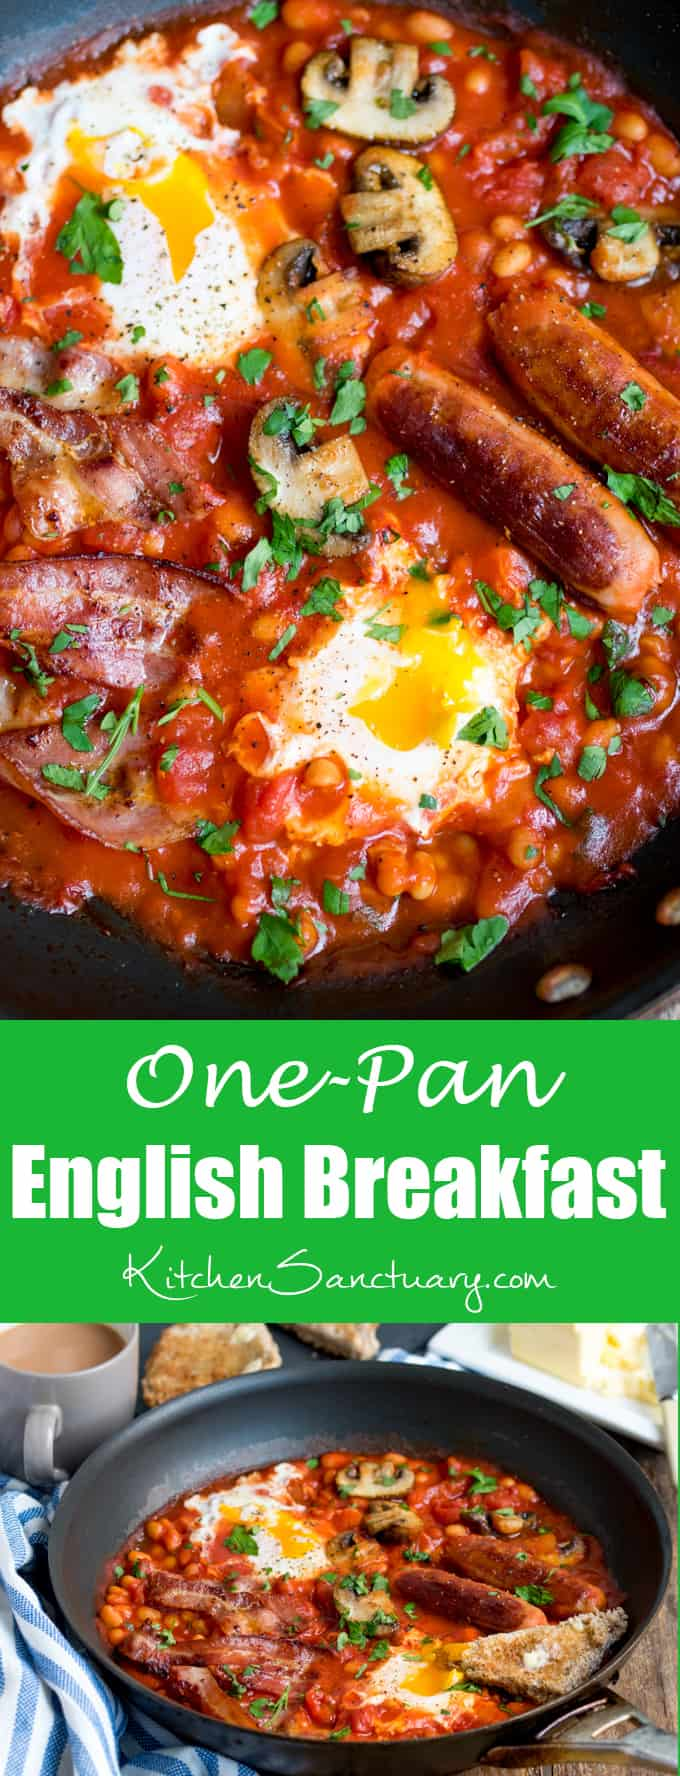 One-Pan English Breakfast with dippy eggs.